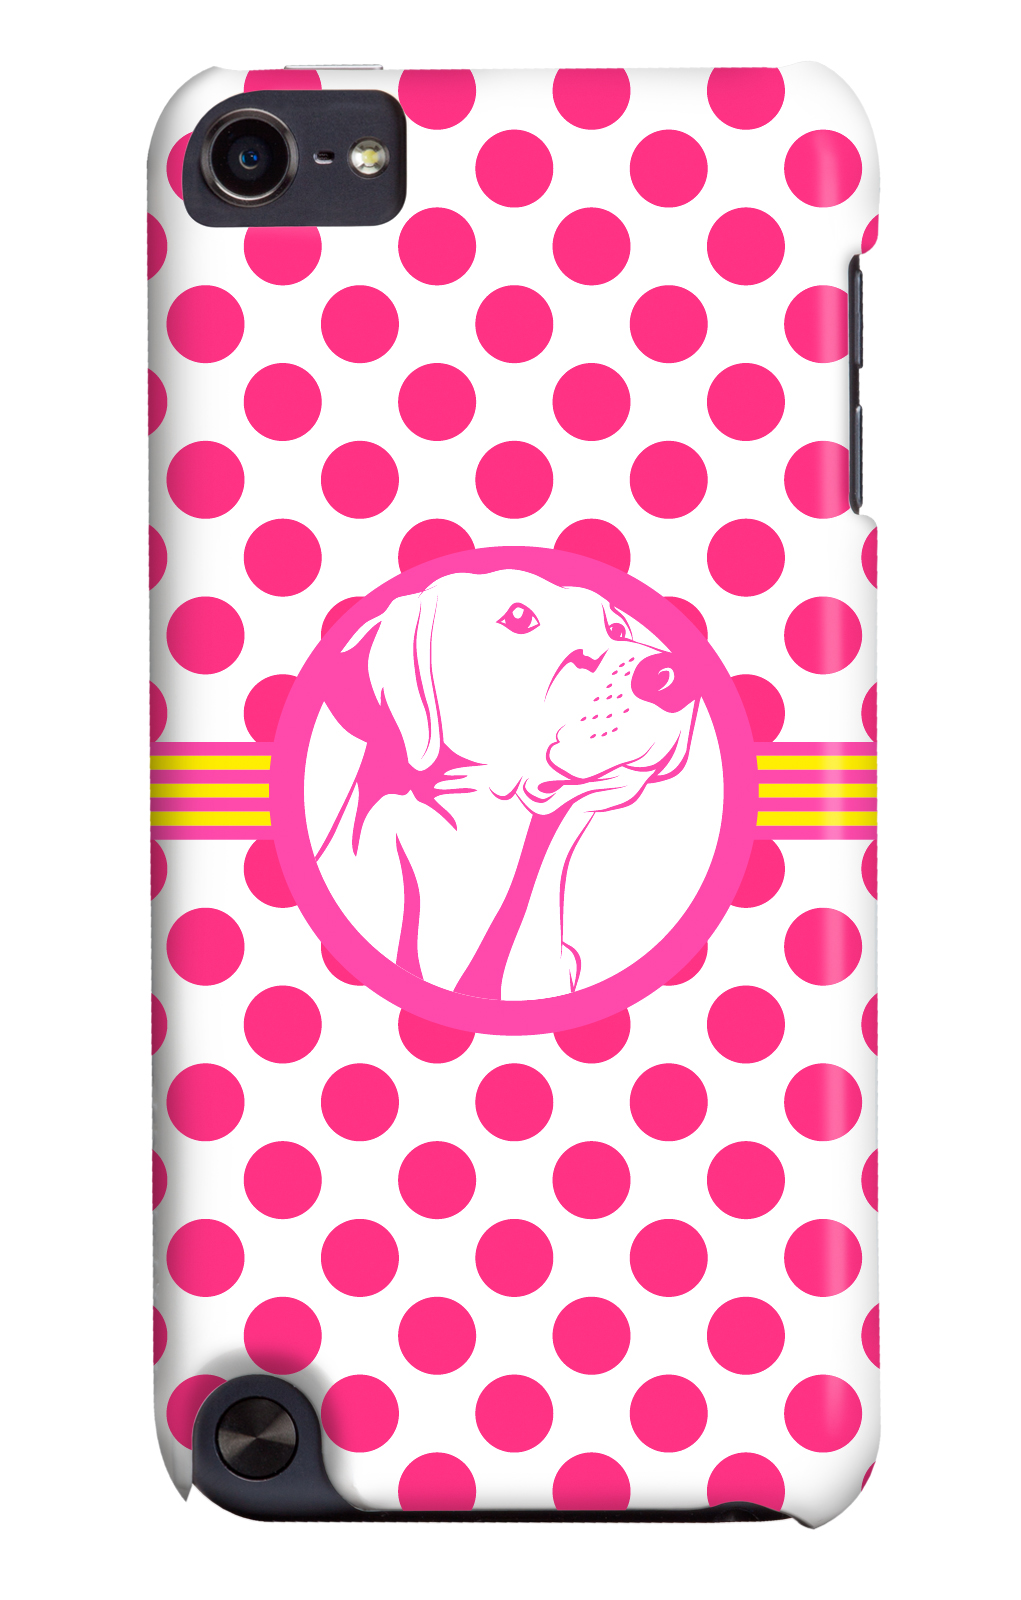 It's a Lab Thing 3 Shades of Dog pink polka and orange iphone cases